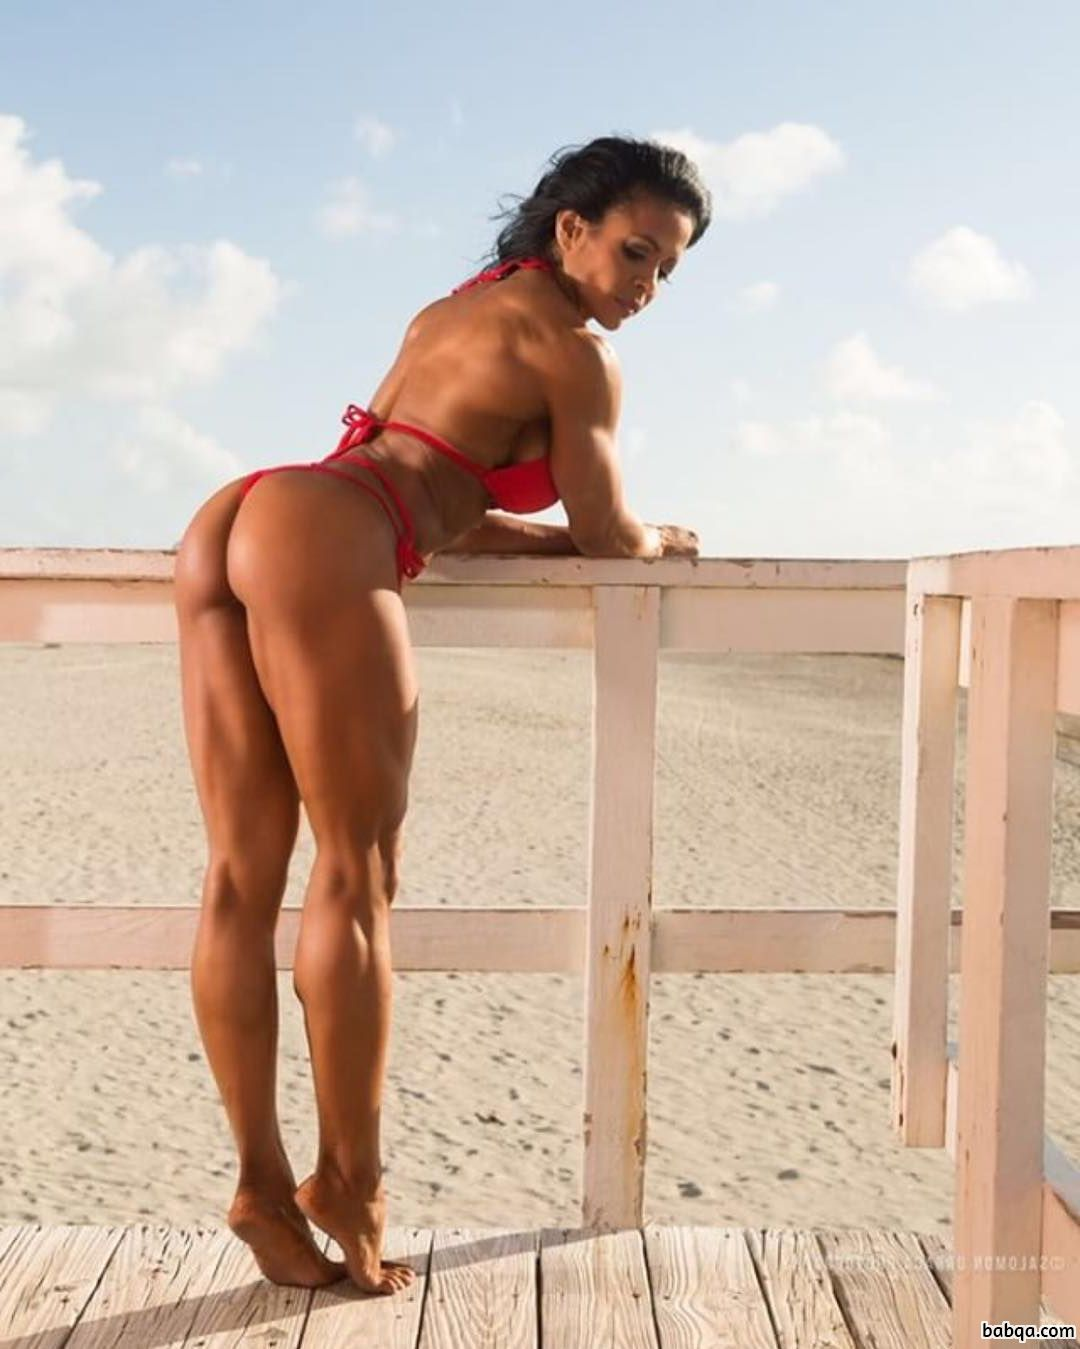 perfect chick with strong body and muscle arms image from flickr